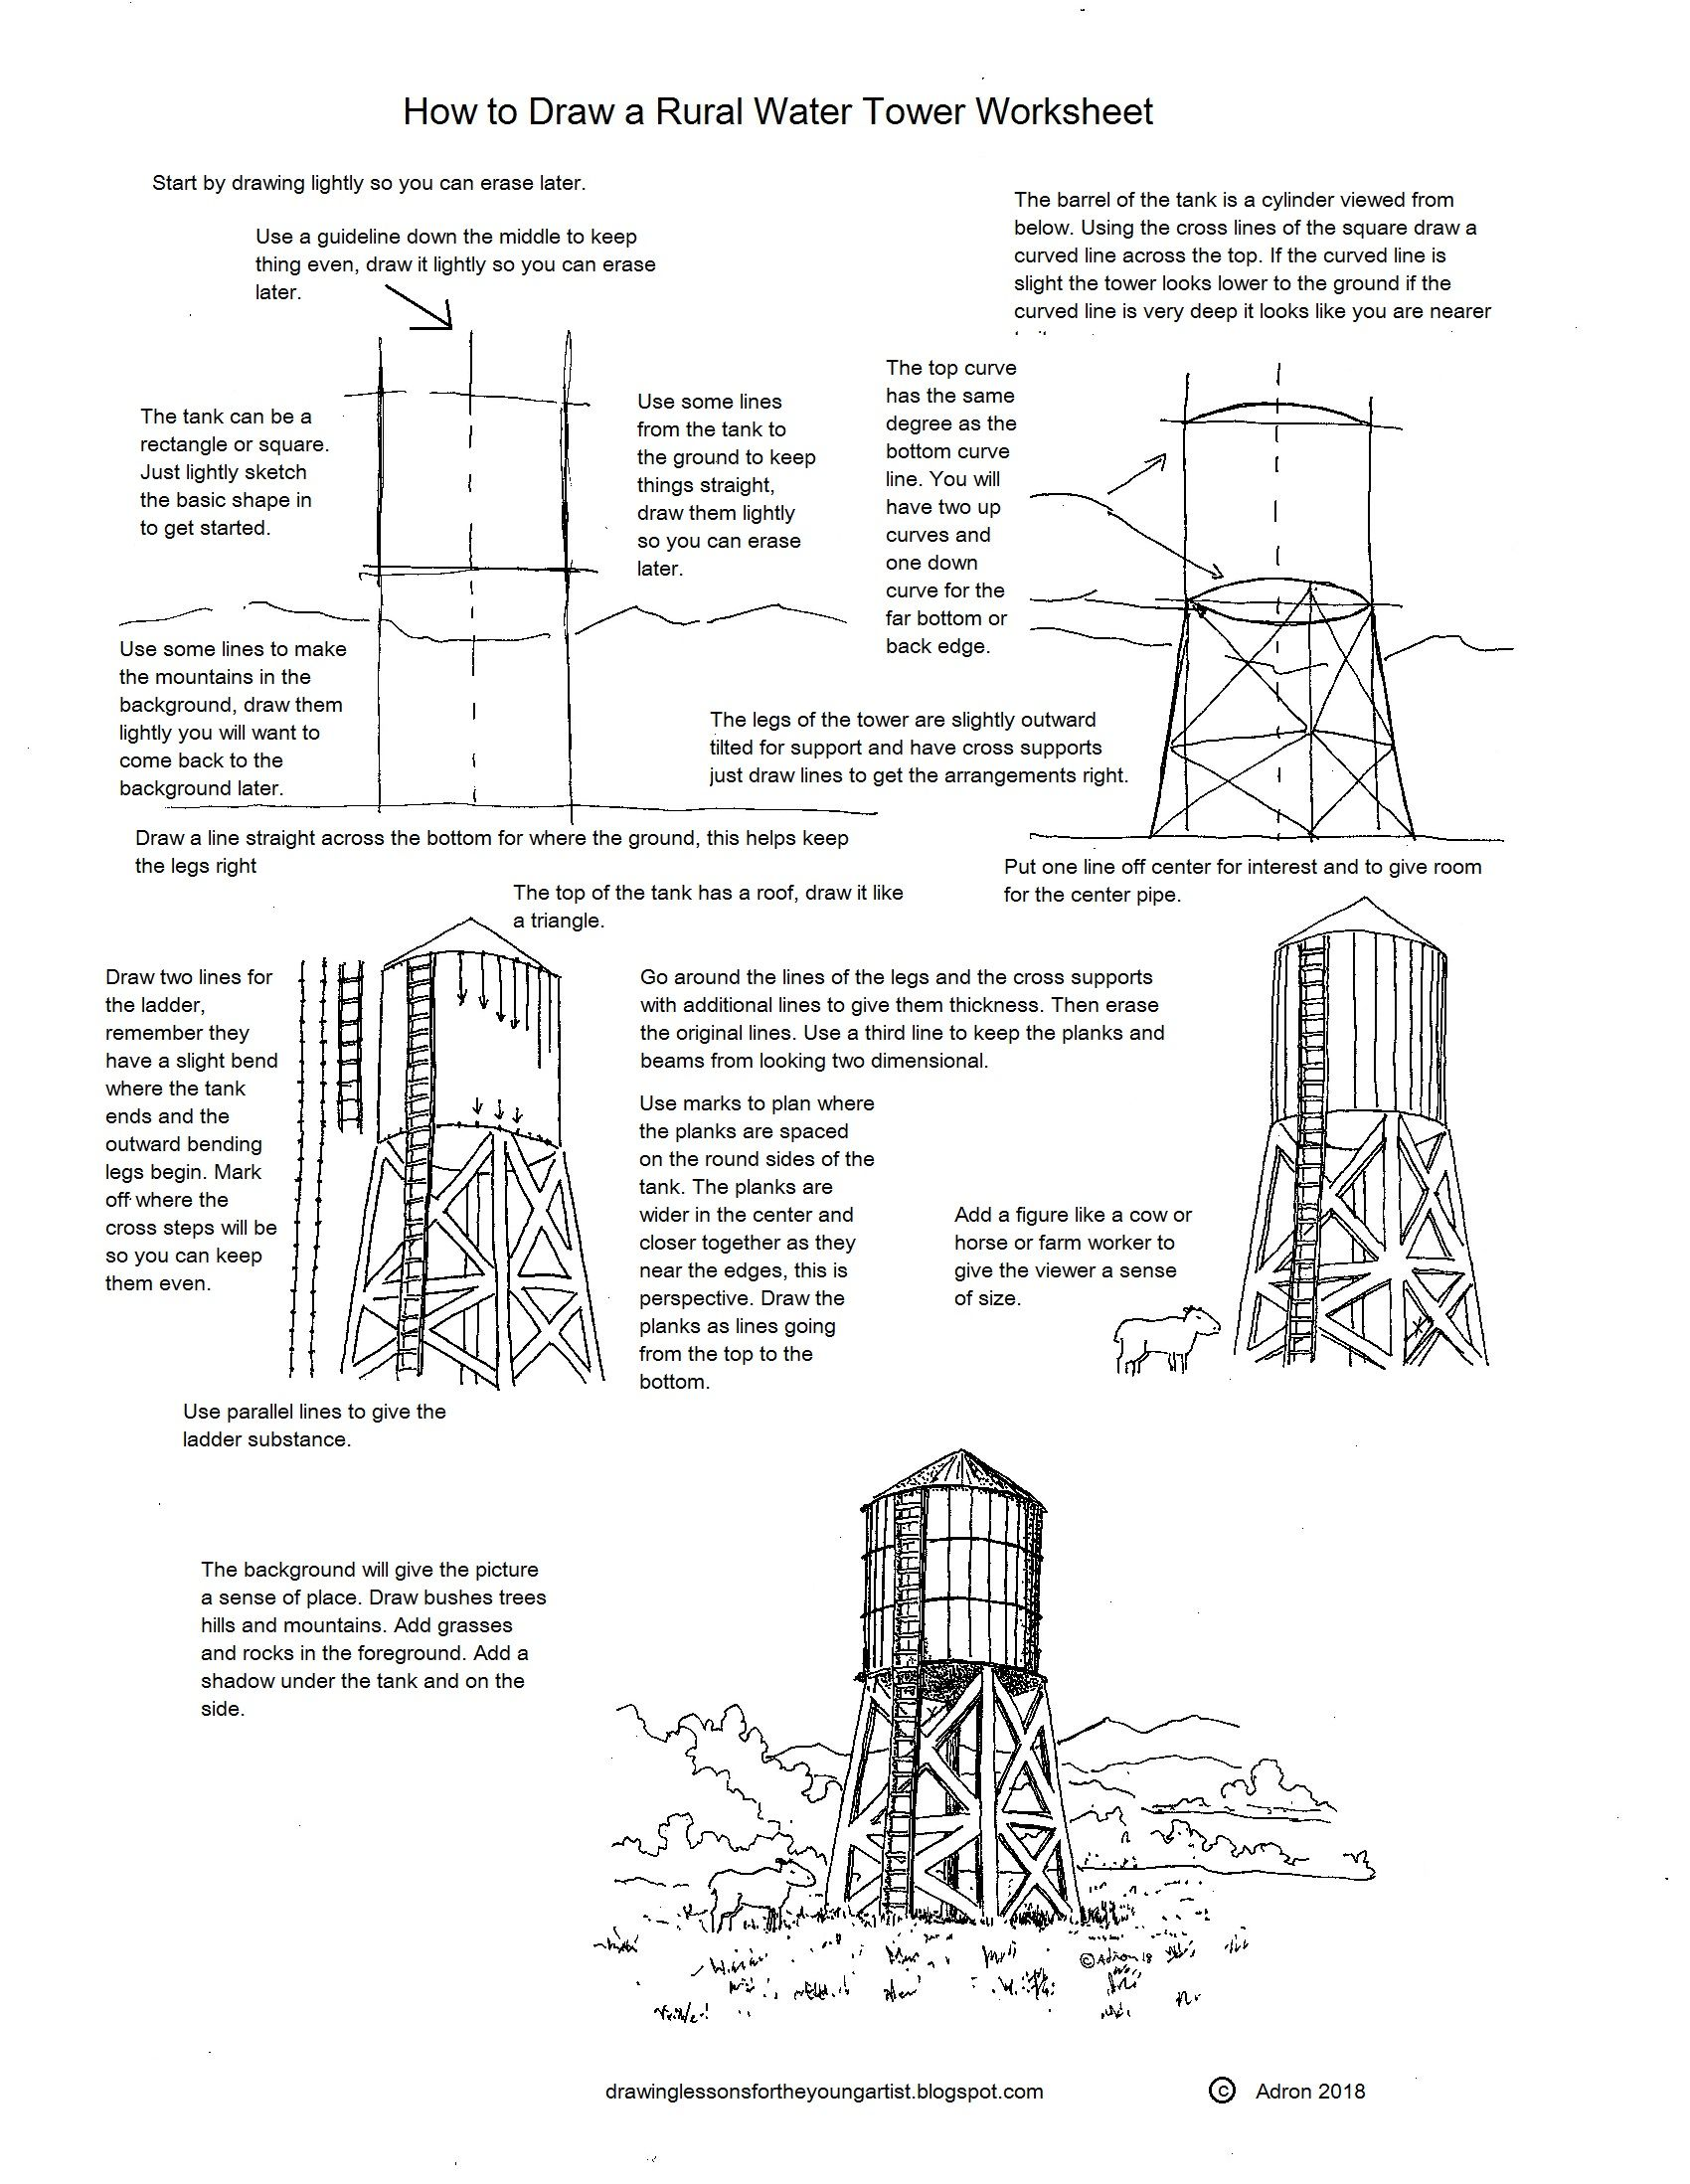 How To Draw A Rural Water Tower Worksheet And Printable